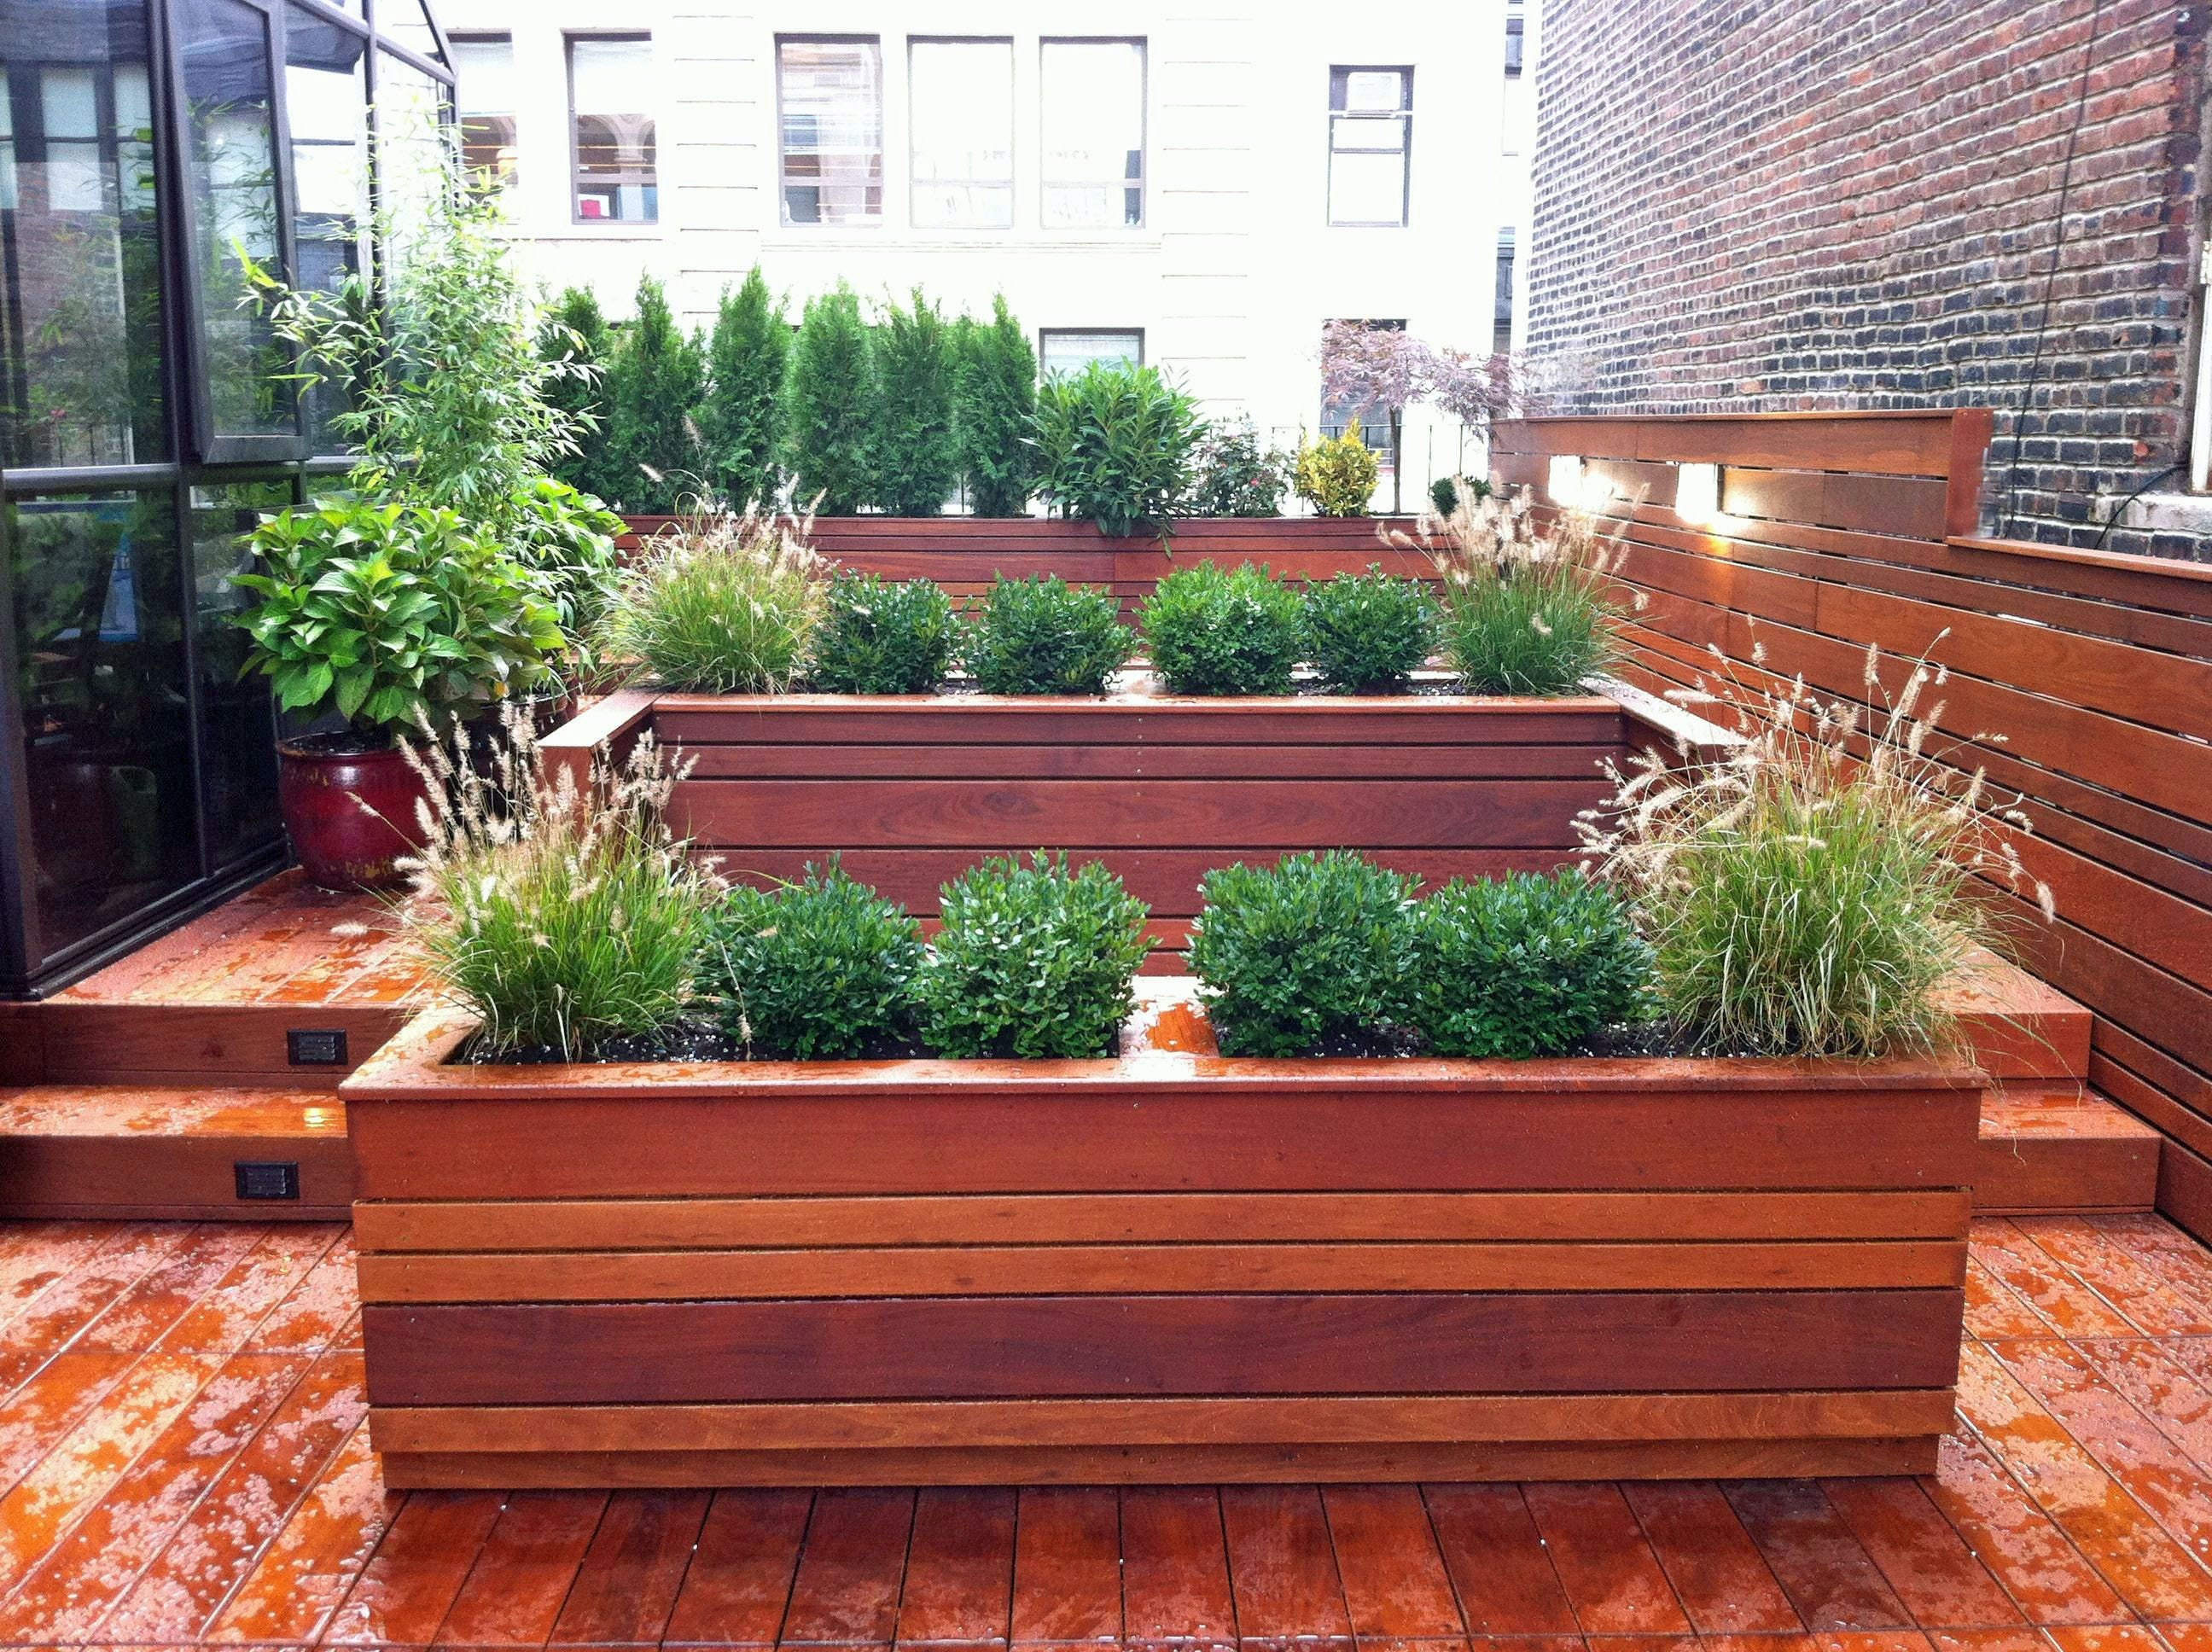 Amber Freda Nyc Home Garden Design Archinect